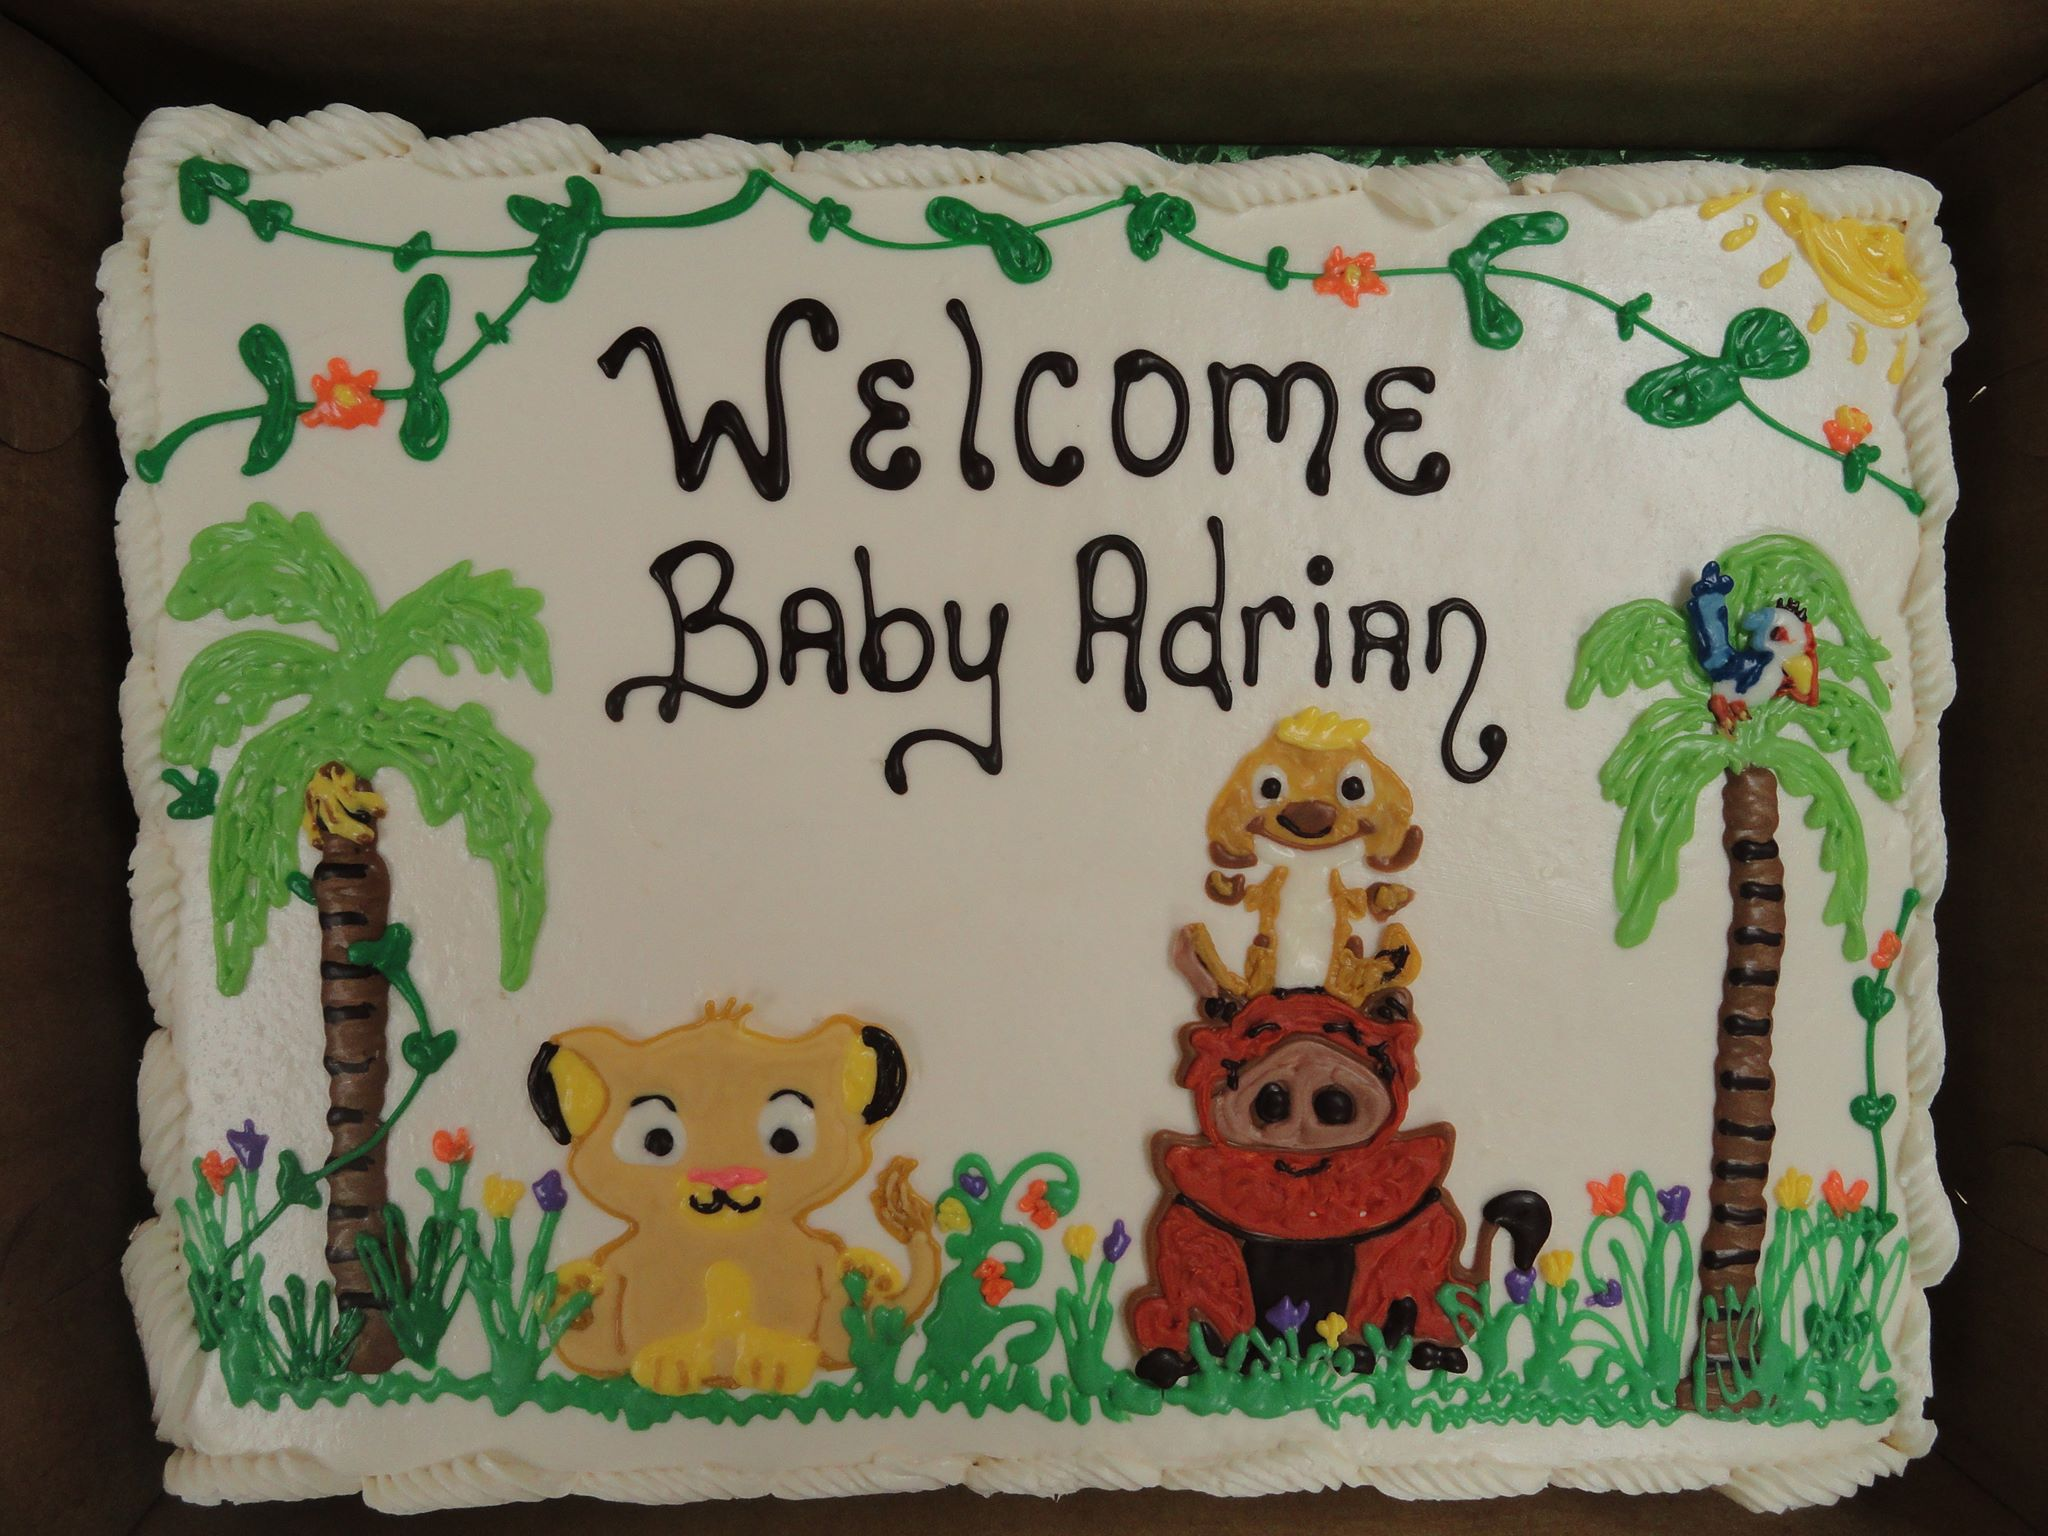 pastry cafe houston heights lion king theme baby shower cake